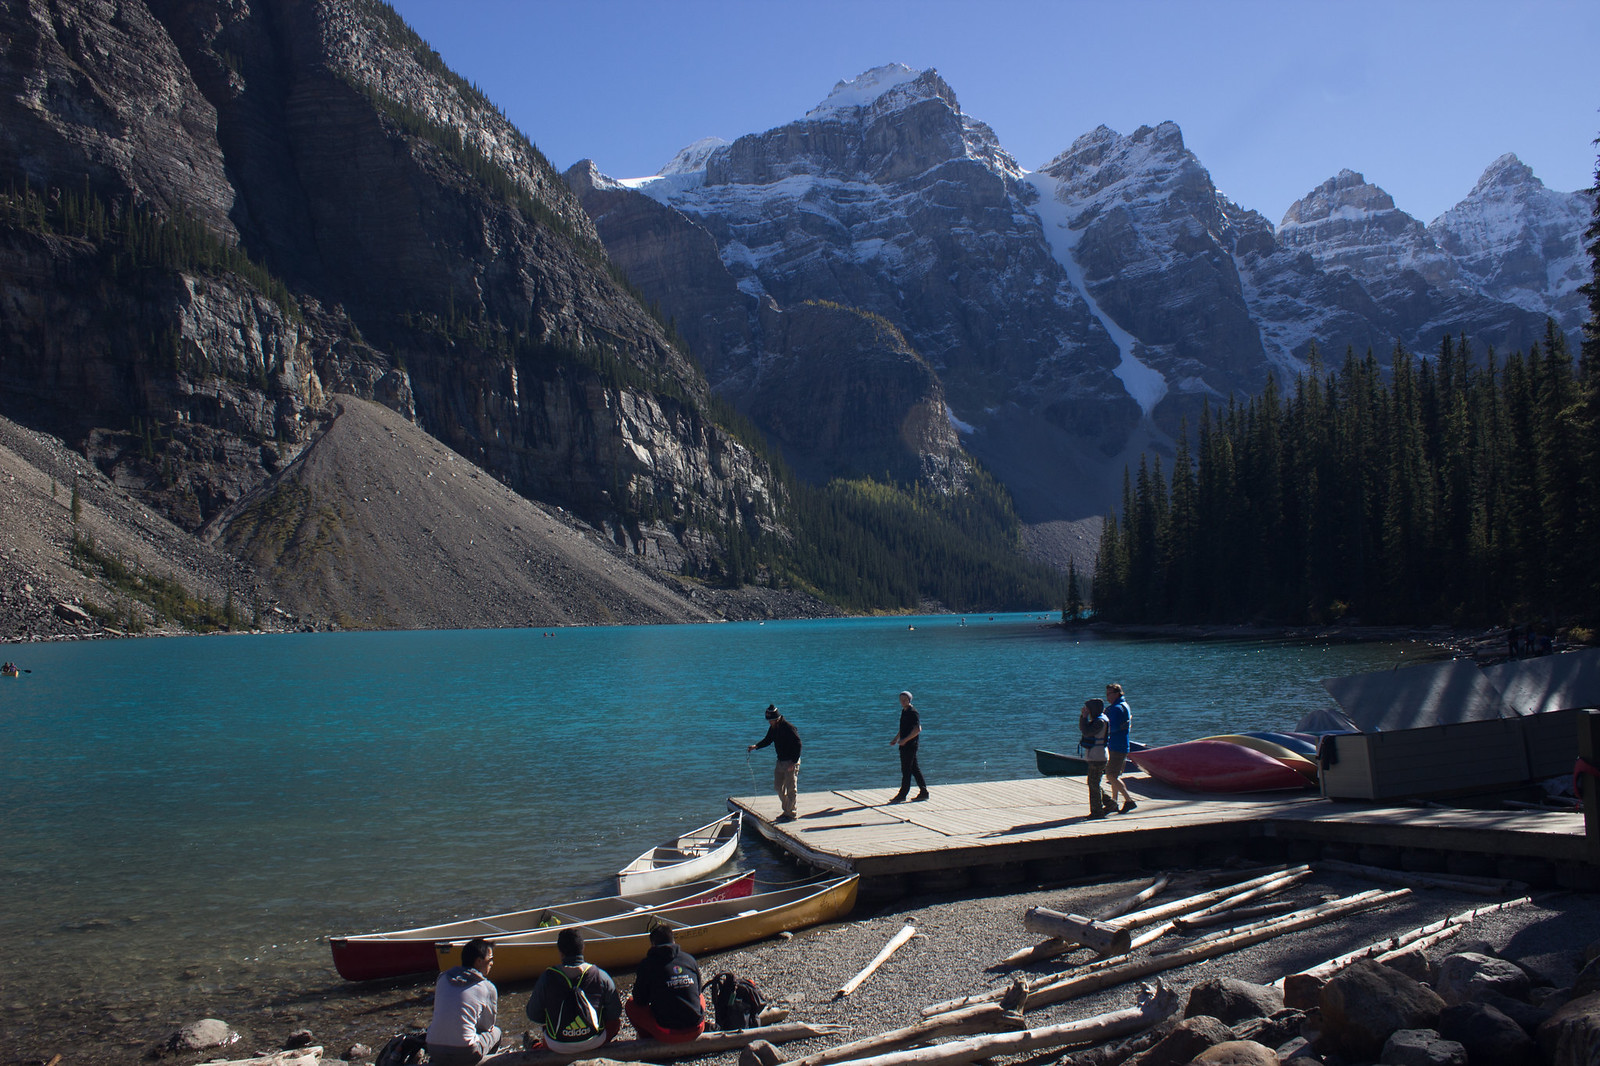 Kayaks at Moraine Lake, Alberta